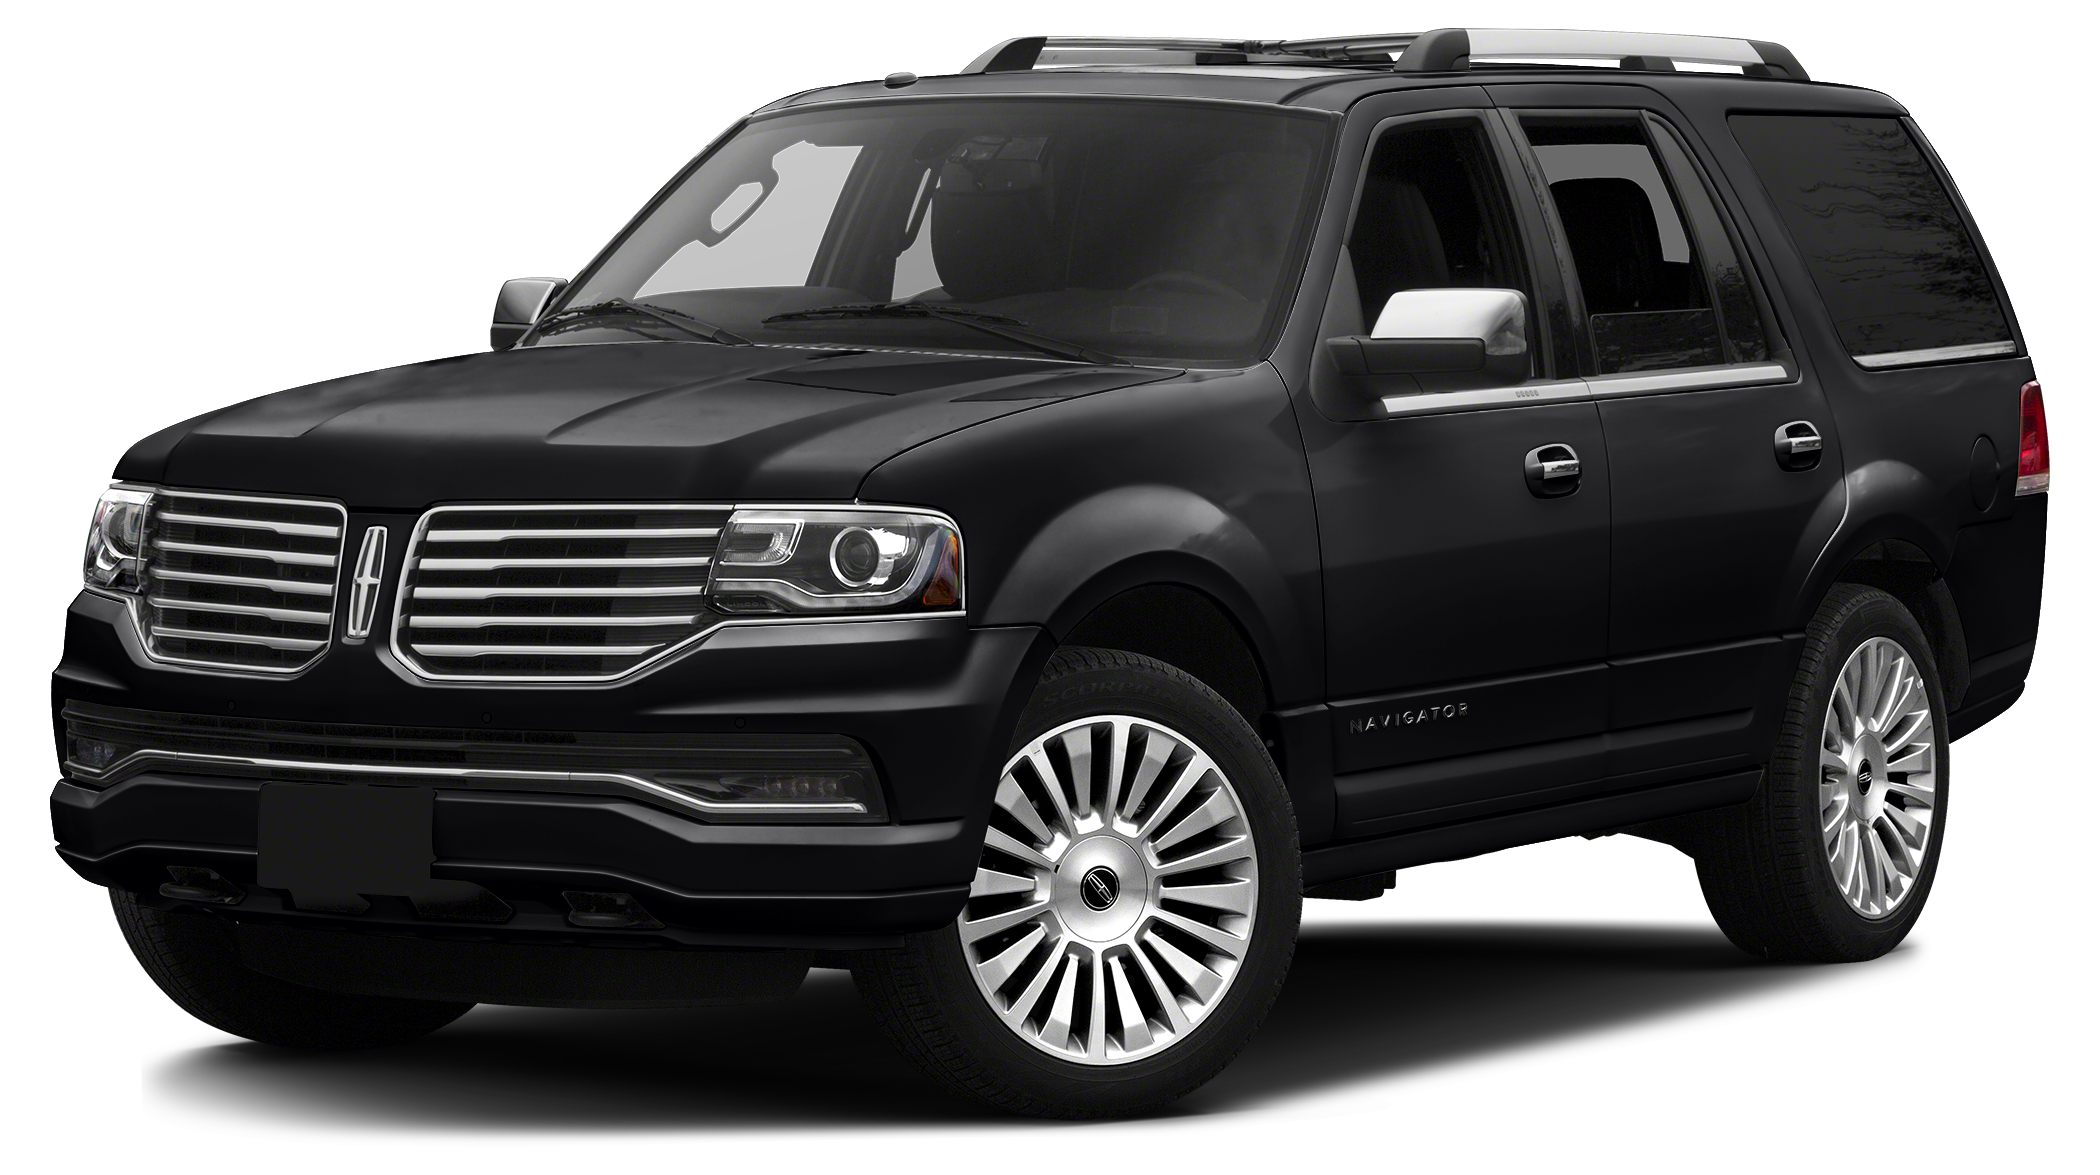 2017 Lincoln Navigator Select Miles 9Color Black Velvet Stock LR18 VIN 5LMJJ2HT1HEL00925